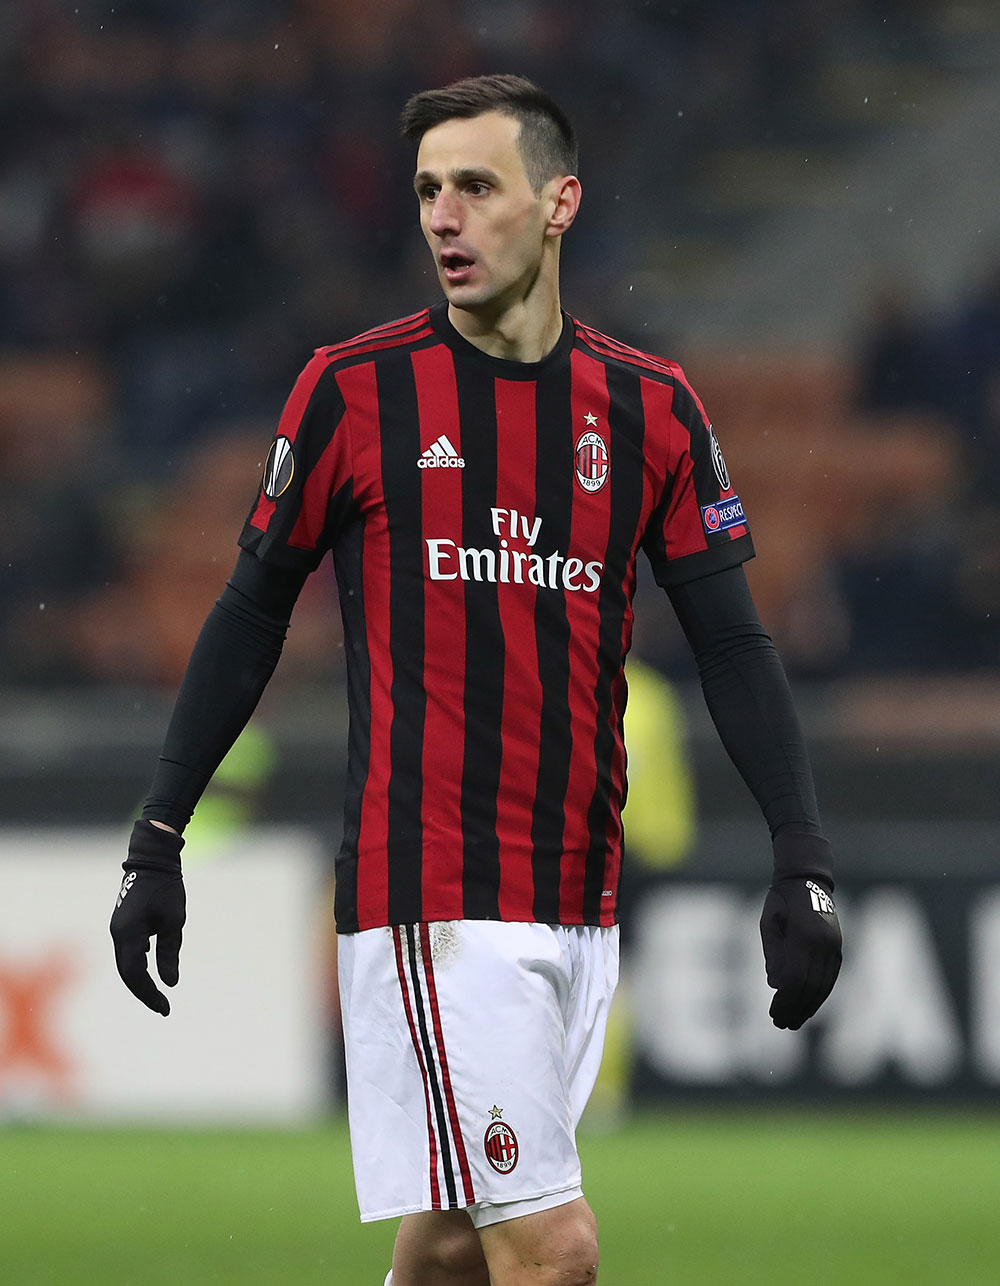 Nikola Kalinić during Milan-Ludogorets at the San Siro on February 22, 2018. (Photo by Marco Luzzani/Getty Images)